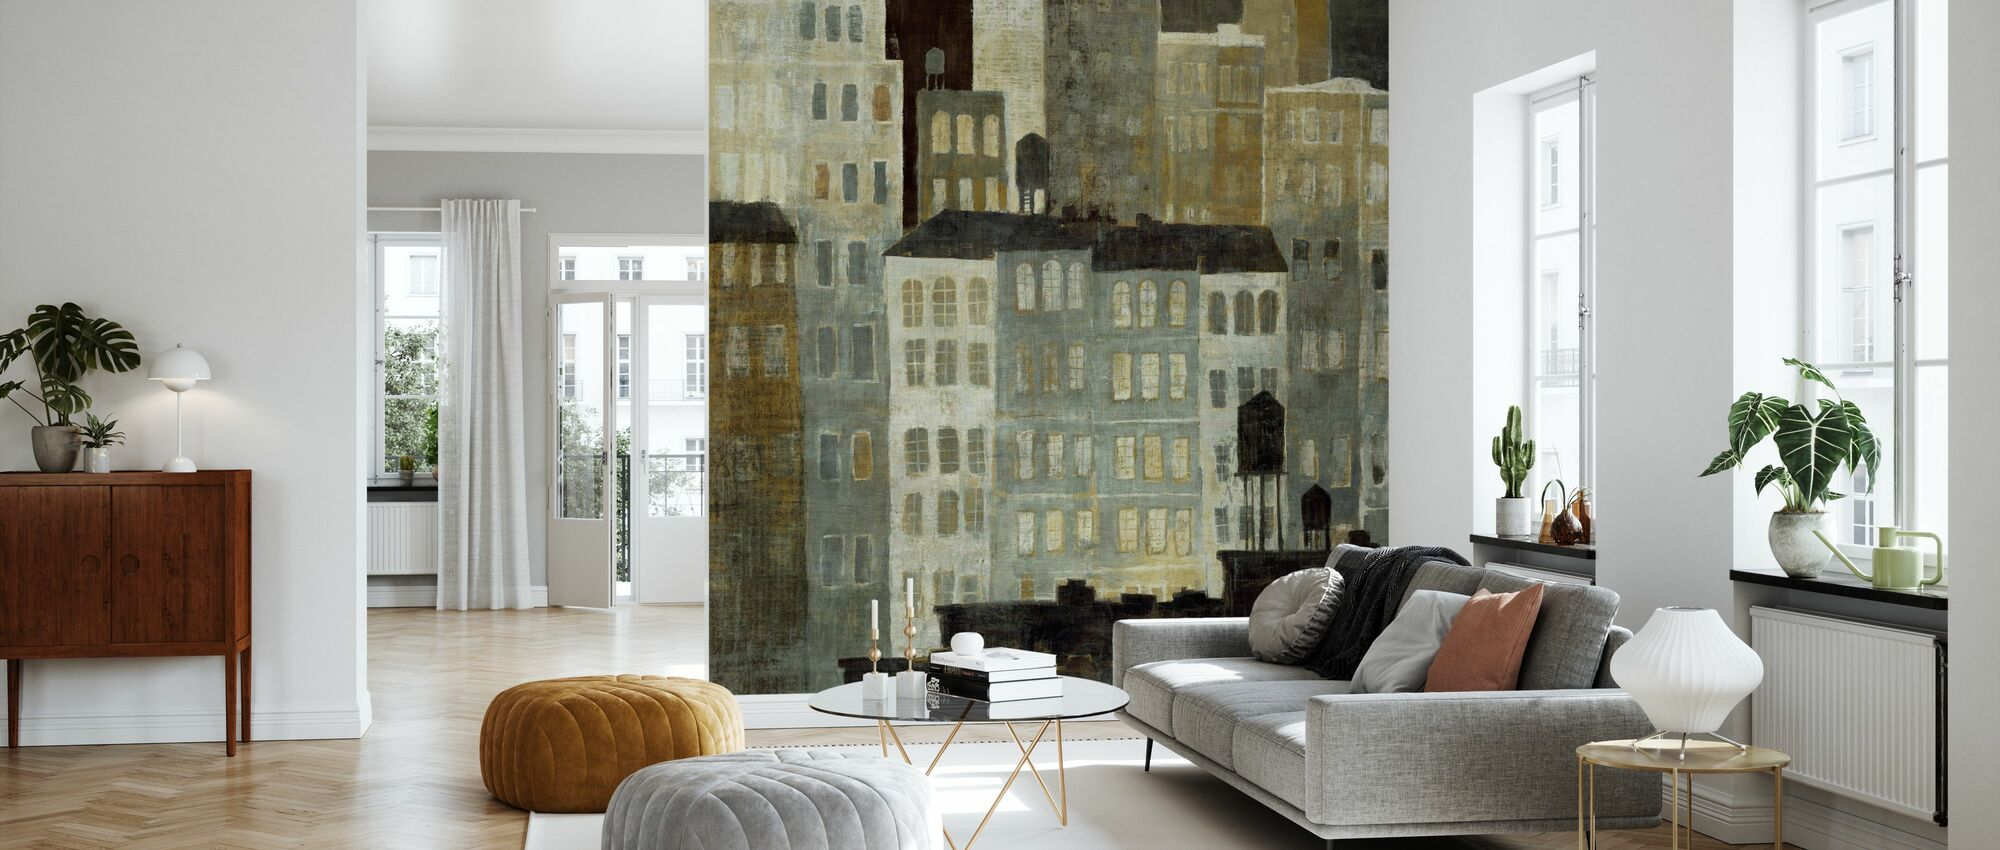 Avery Tillmon - Water Towers - Wallpaper - Living Room